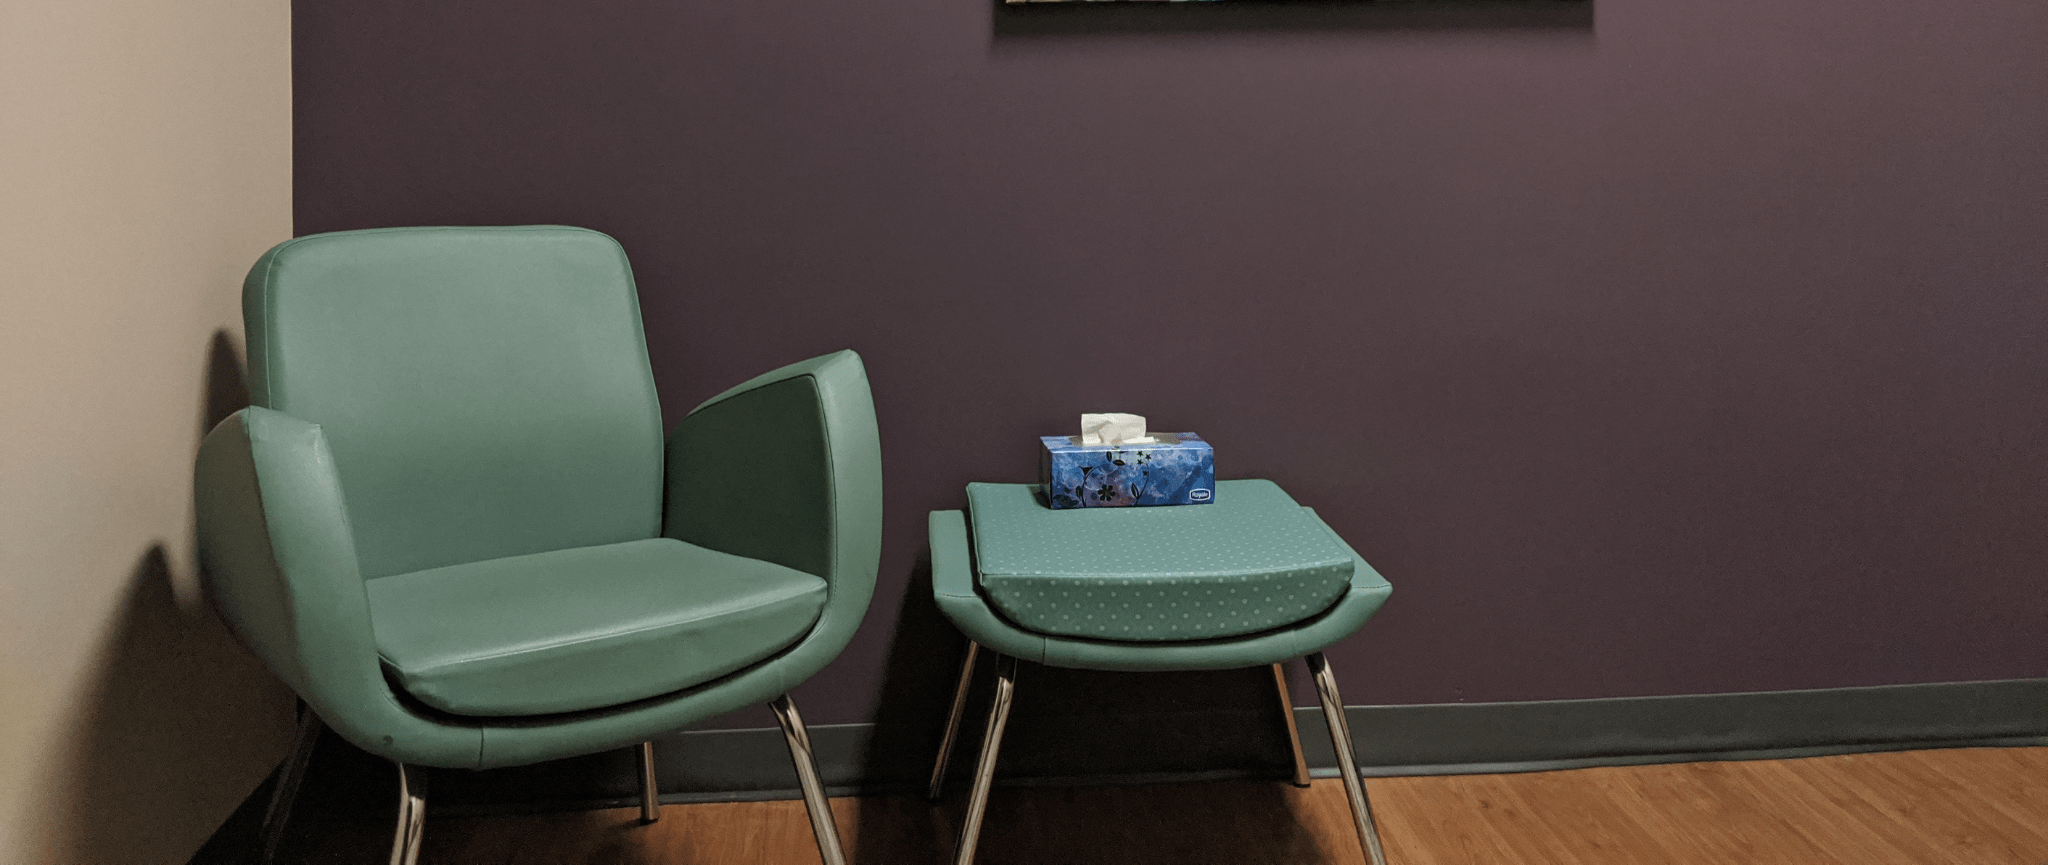 A green chair and floral painting inside an FSWE counselling office